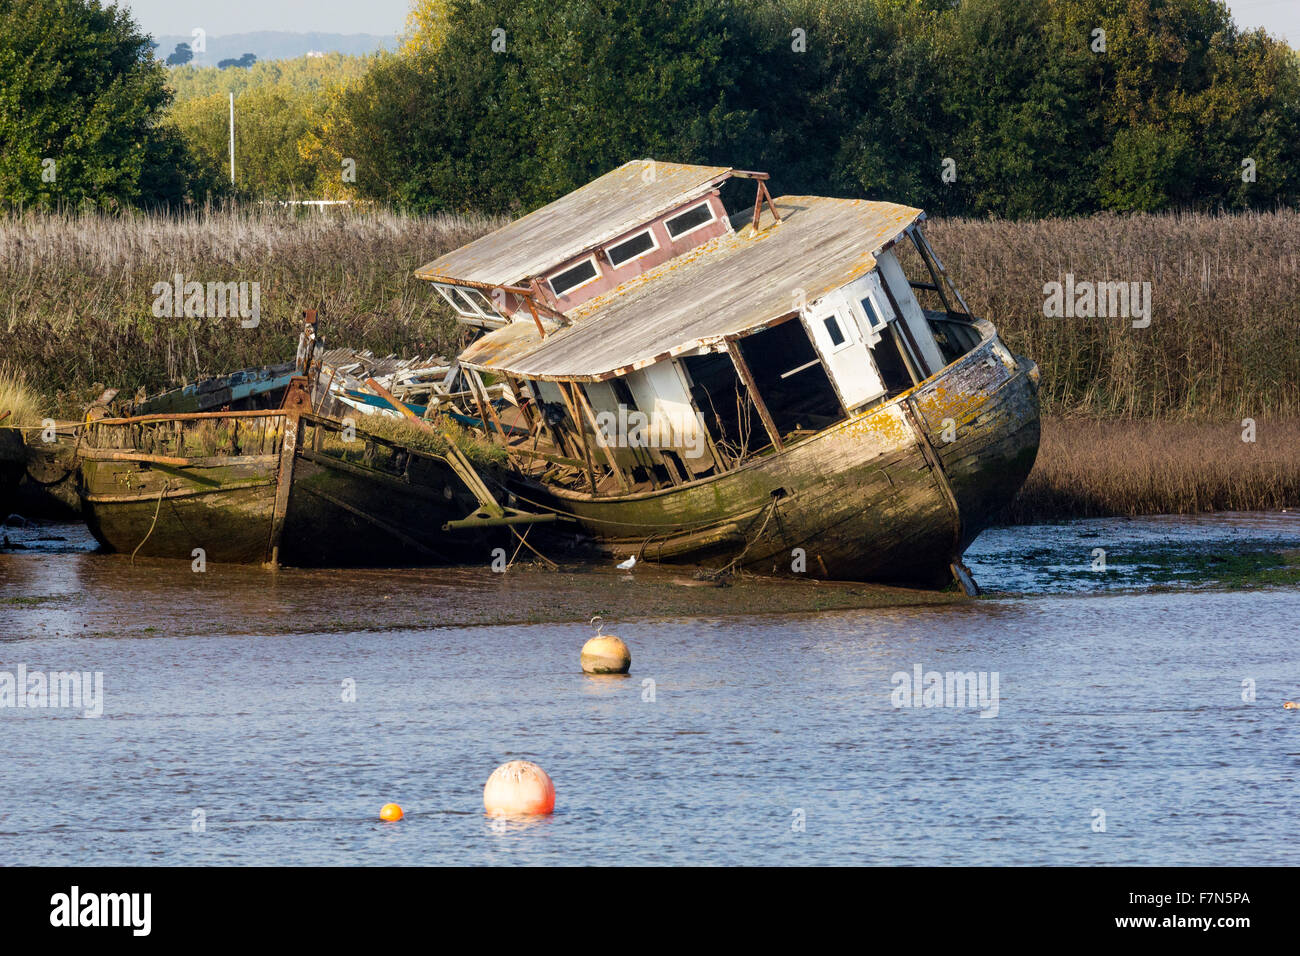 Rotting Wooden Wrecks in the Mud at Topsham, Devon, England - Stock Image